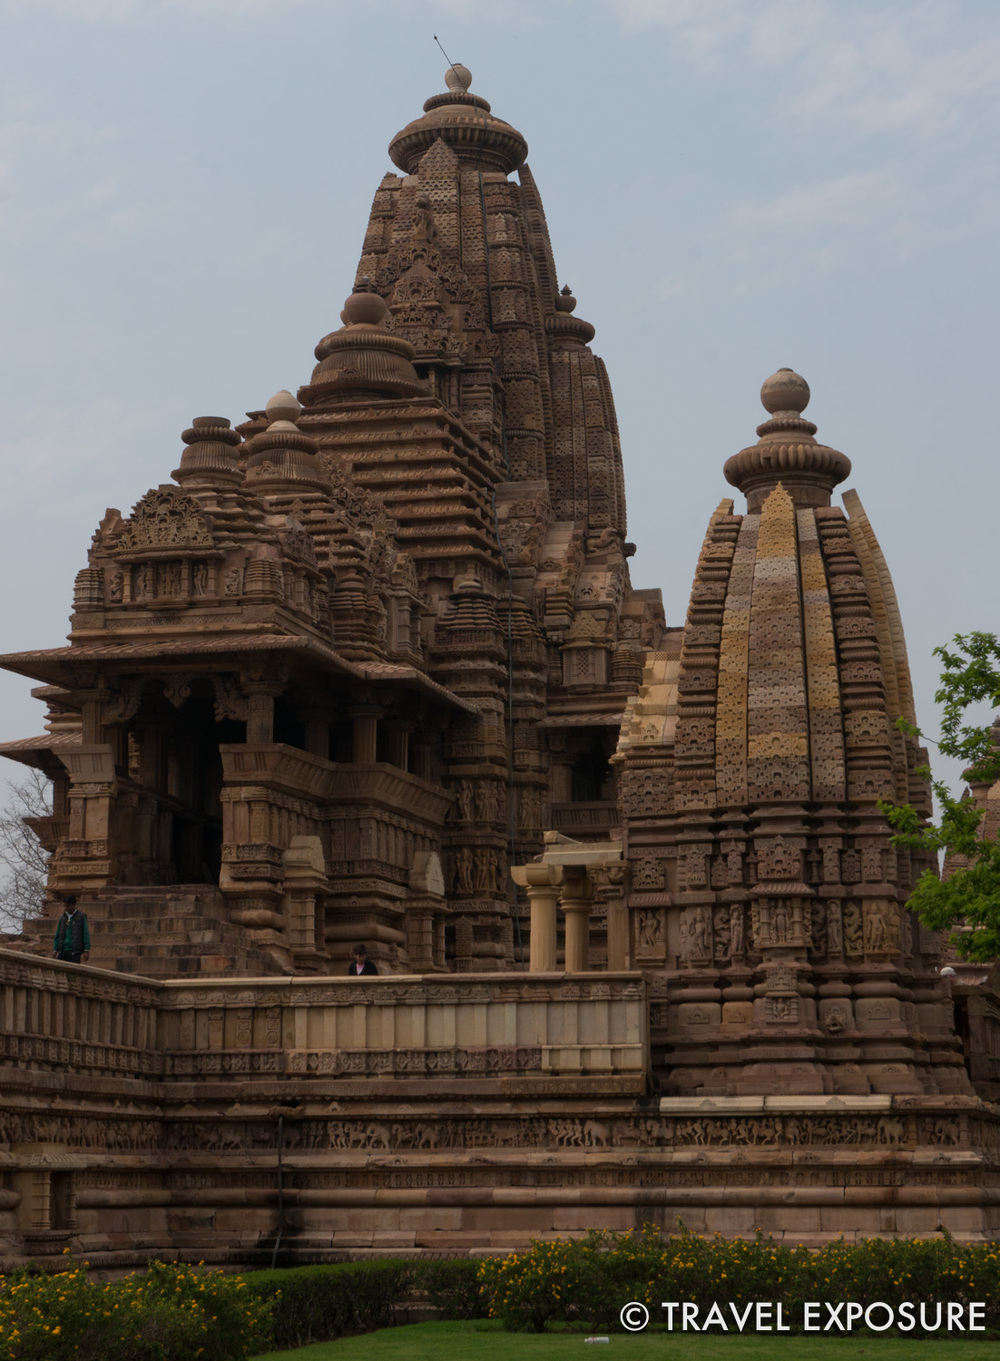 The  Hindu and Jain temples at Khajuraho. Most werebuilt between 950 and 1050. They are beatifullydecorated and famous for their erotic sculptures depicting scenes from the Kama Sutra.